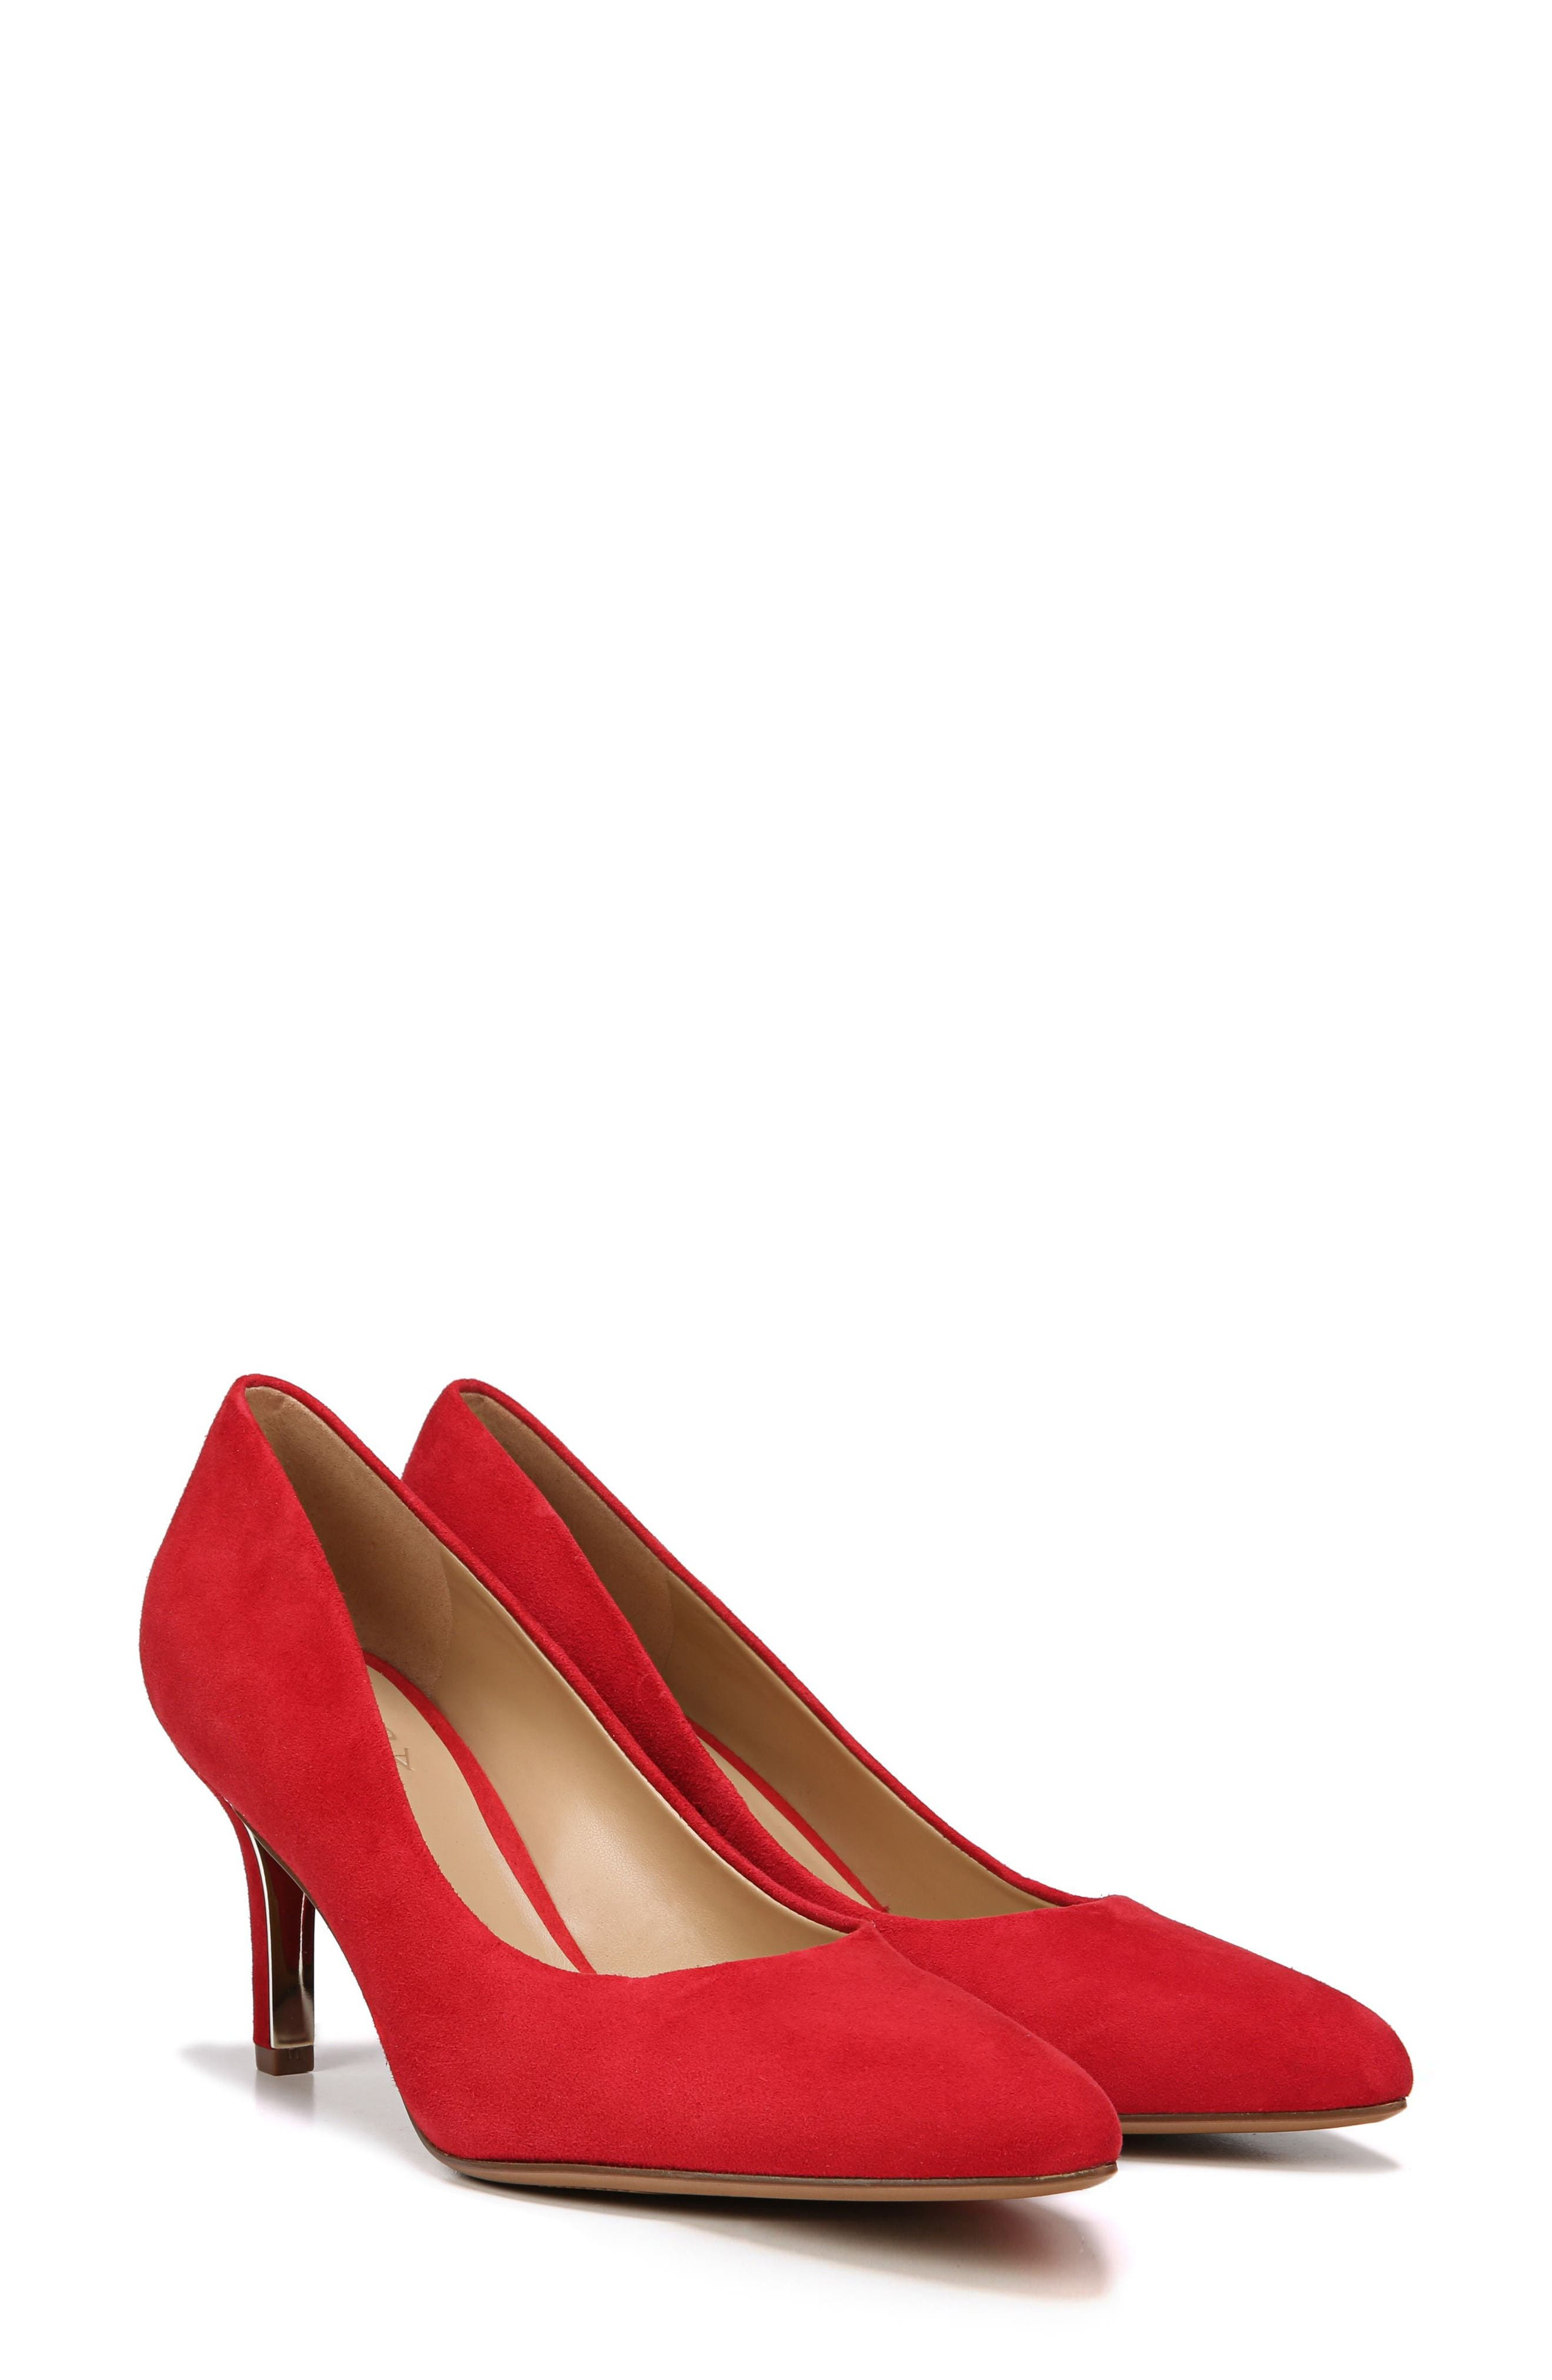 NATURALIZER Natalie Pointy Toe Pump, Main, color, RED SUEDE